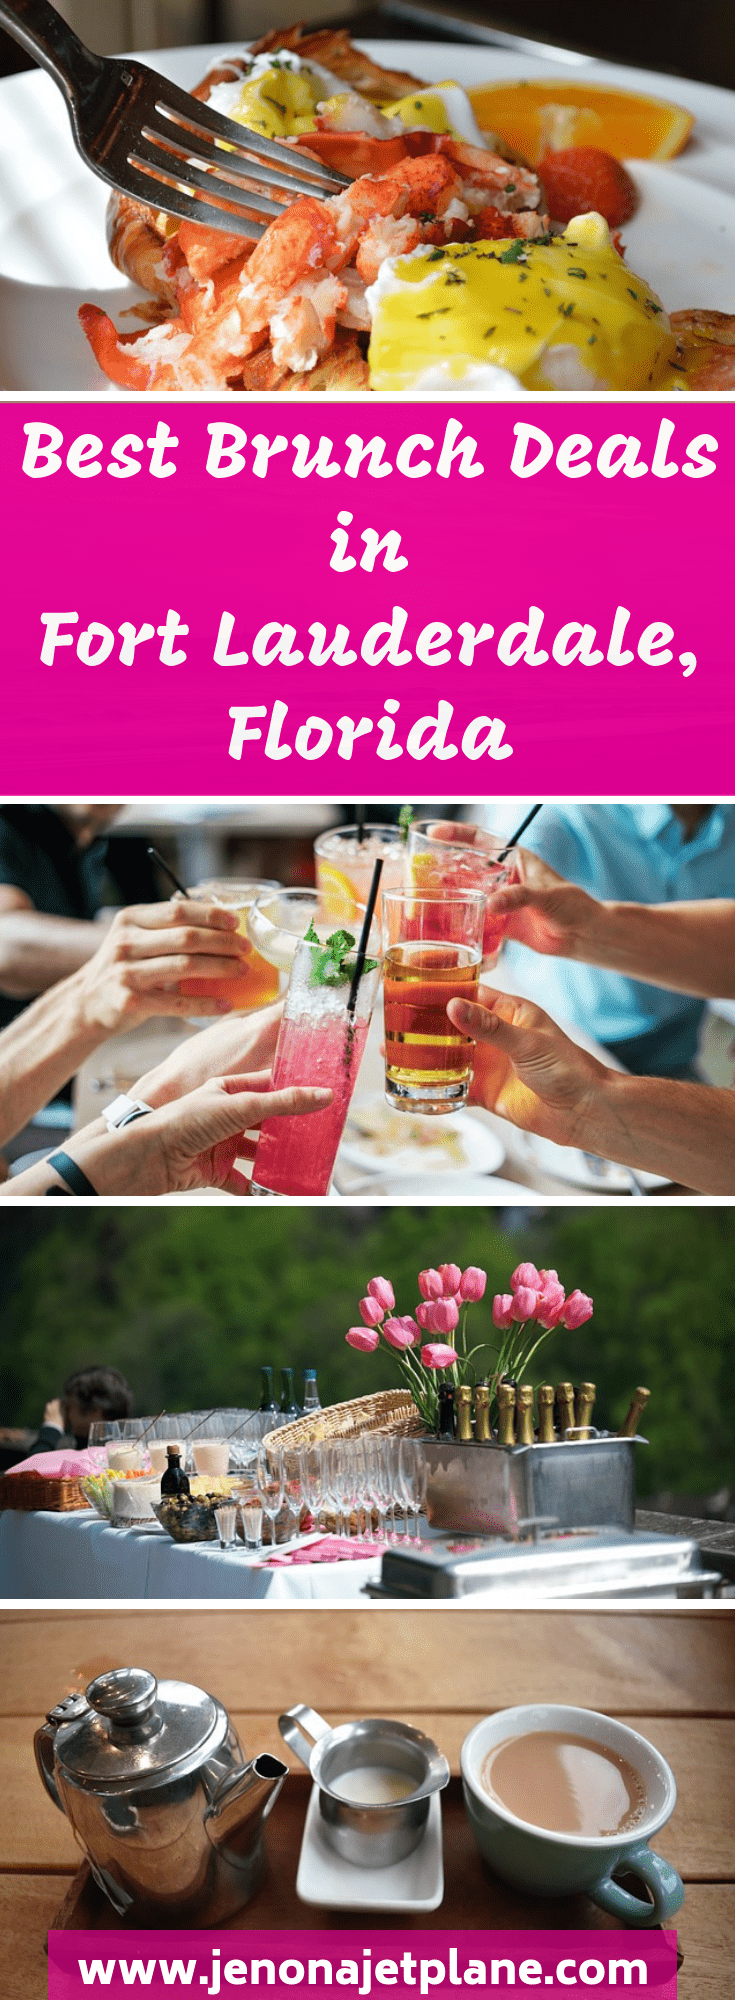 Ready to get your brunch on? Downtown Fort Lauderdale has an impressive brunch scene, with restaurants serving bottomless mimosas on Saturdays and Sundays. Celebrate your Fort Lauderdale vacation with a mimosa at these top spots! Don't miss the best brunch deals in Fort Lauderdale, Florida. Save to your travel board for future reference. #fortlauderdaleflorida #brunch #bestrestaurants #sundaybrunch #floridatrip #travelblogger